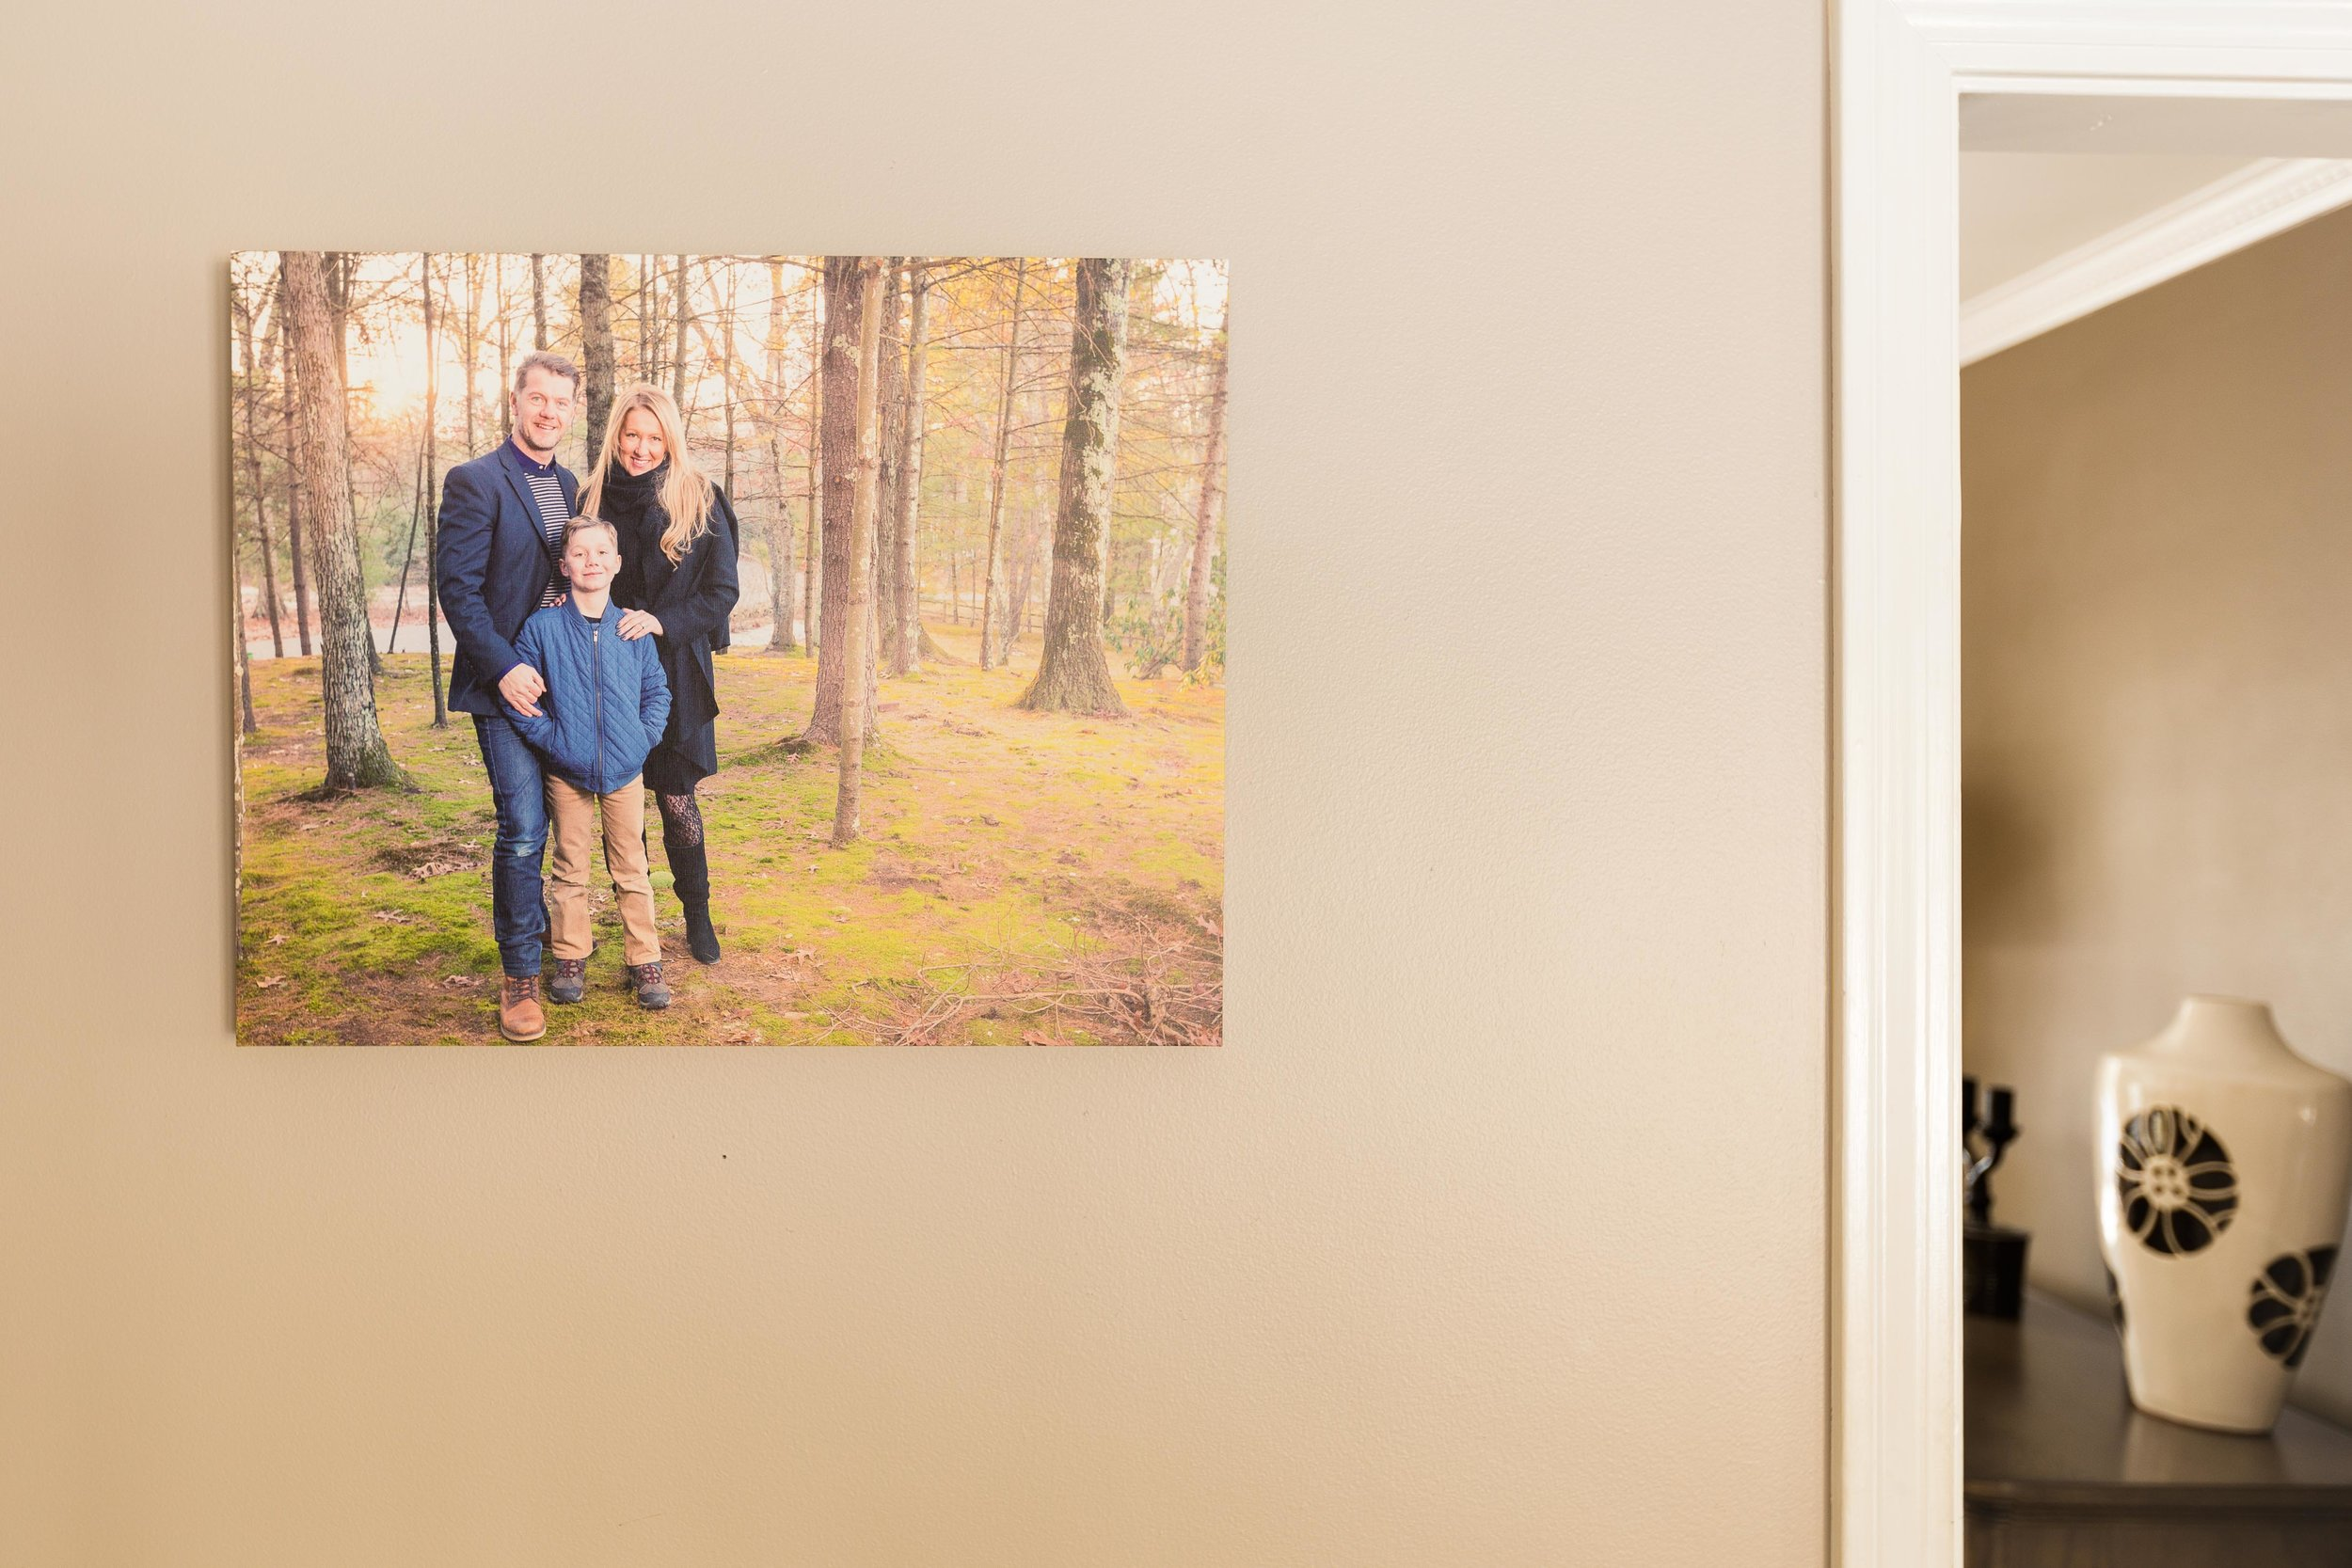 Canvas print on the wall creates memories